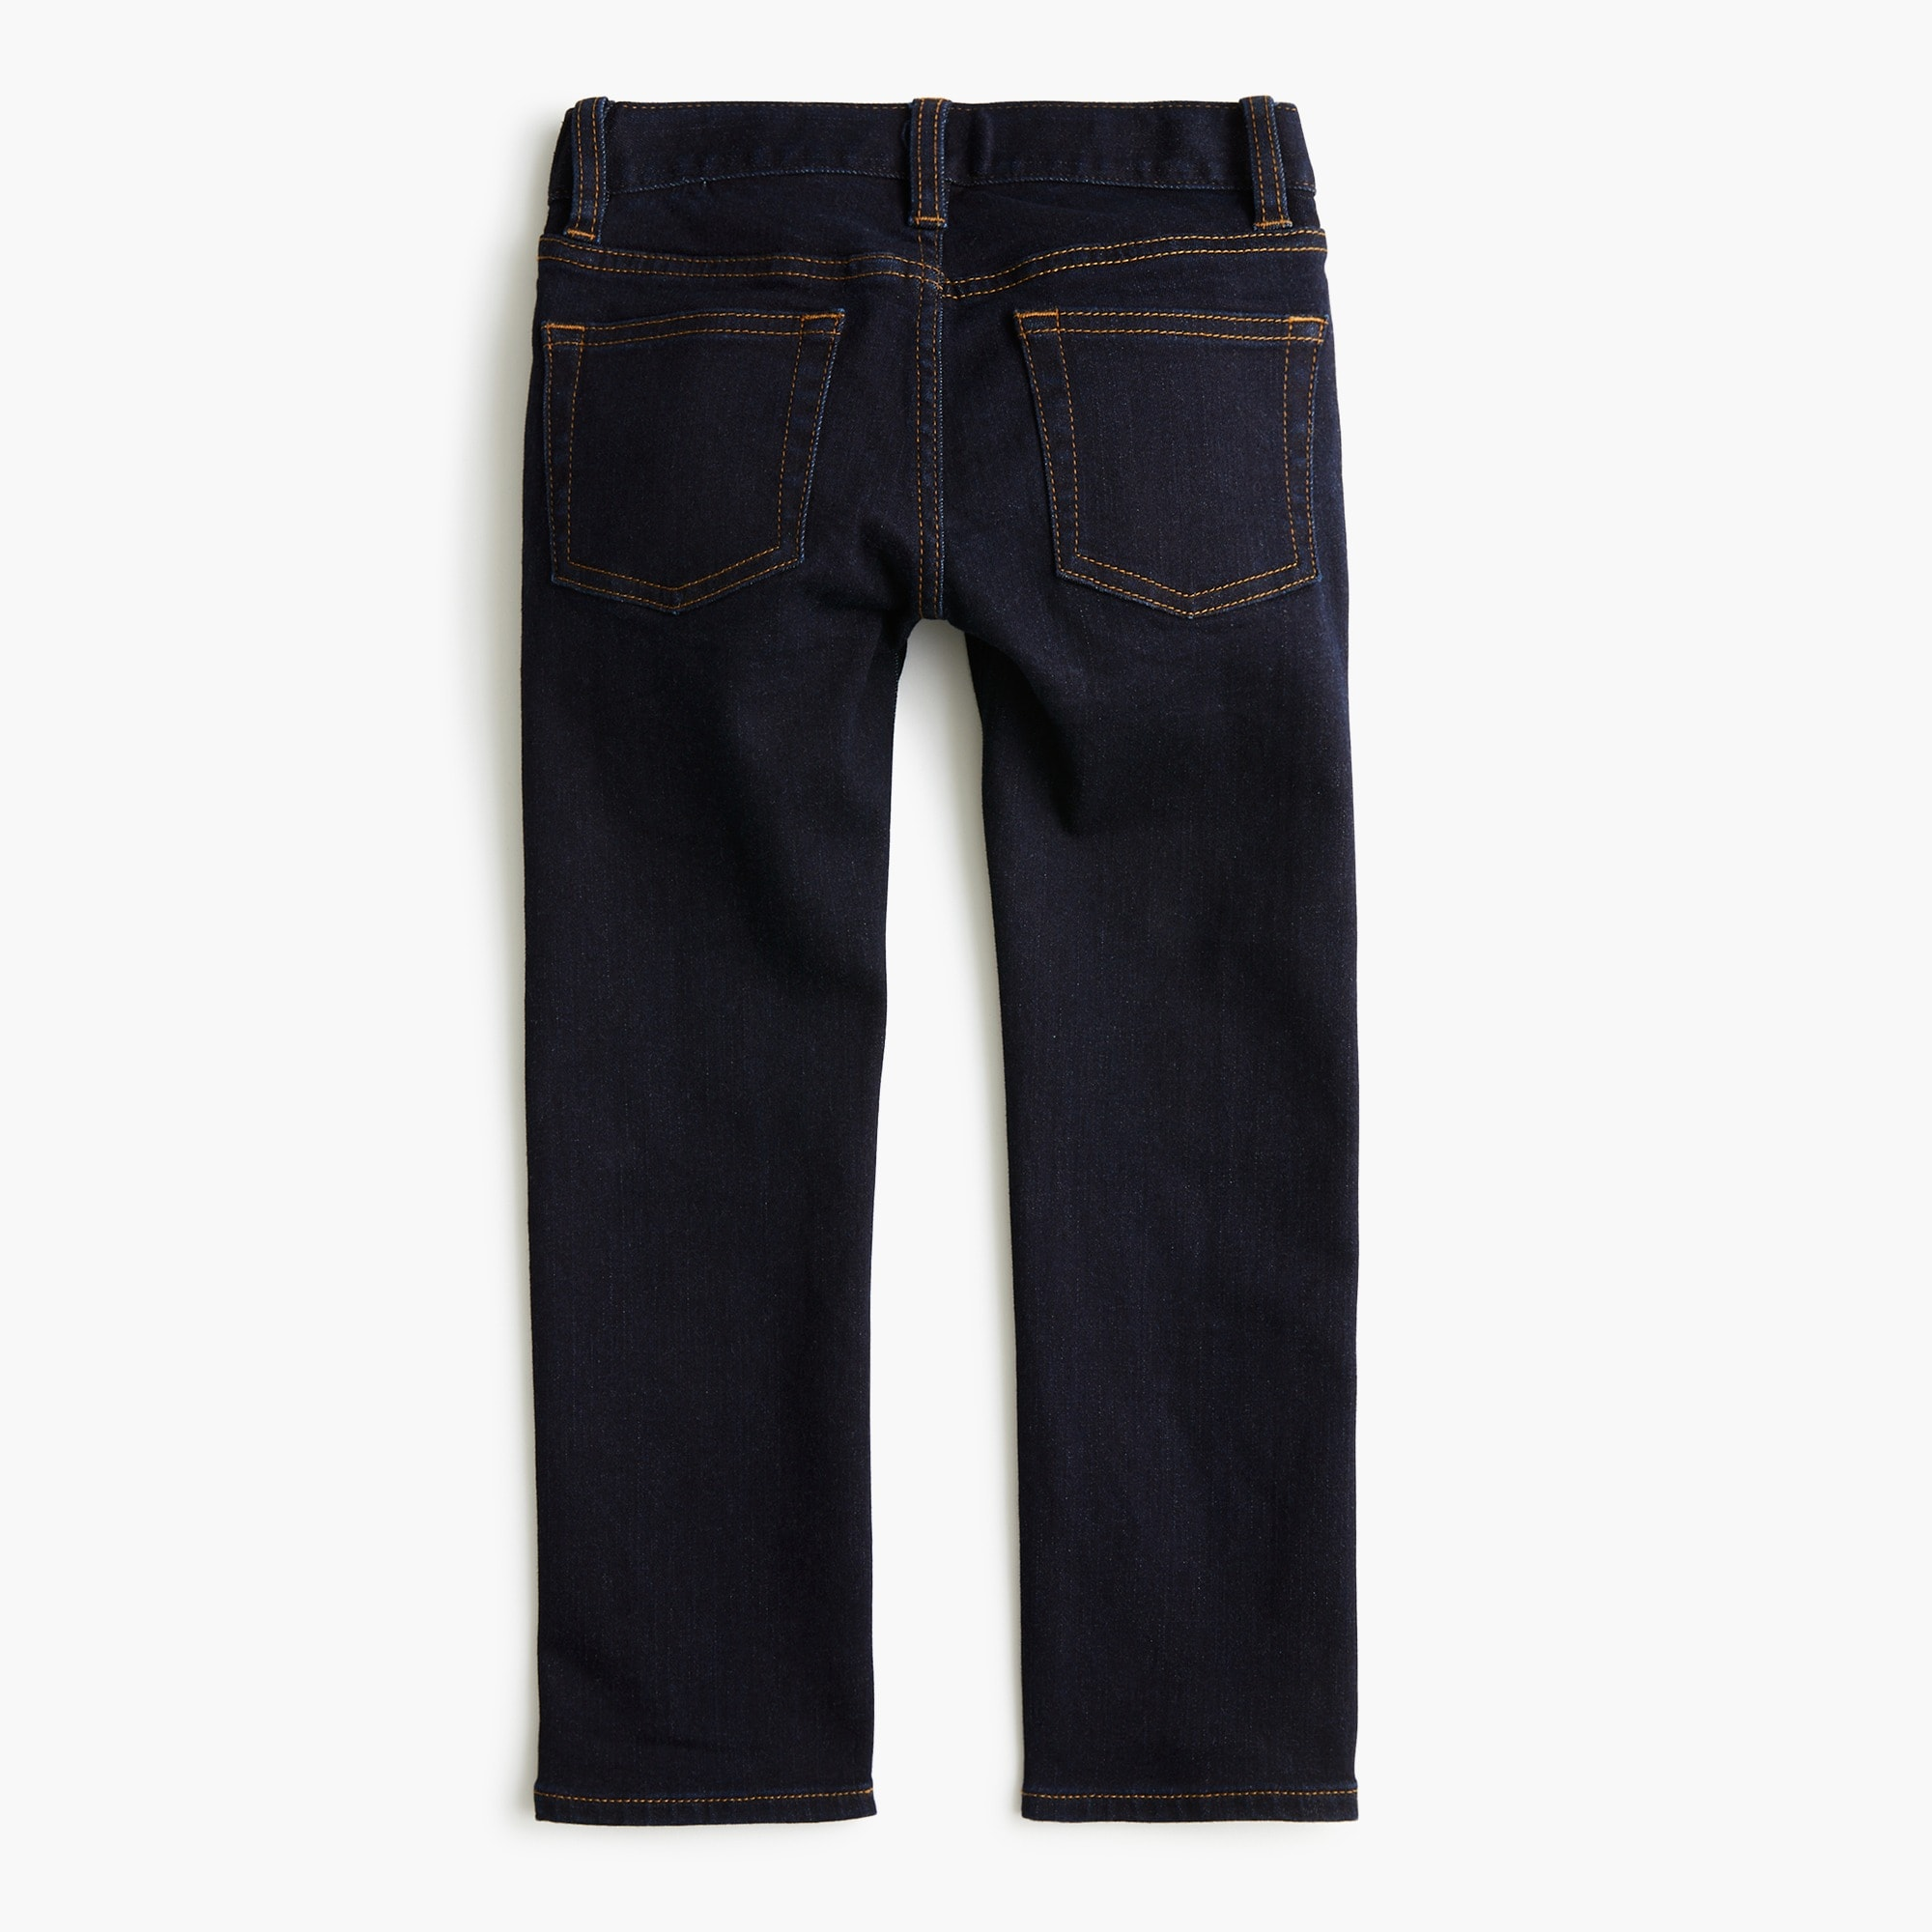 Image 1 for Boys' rinse wash runaround jean in slim fit